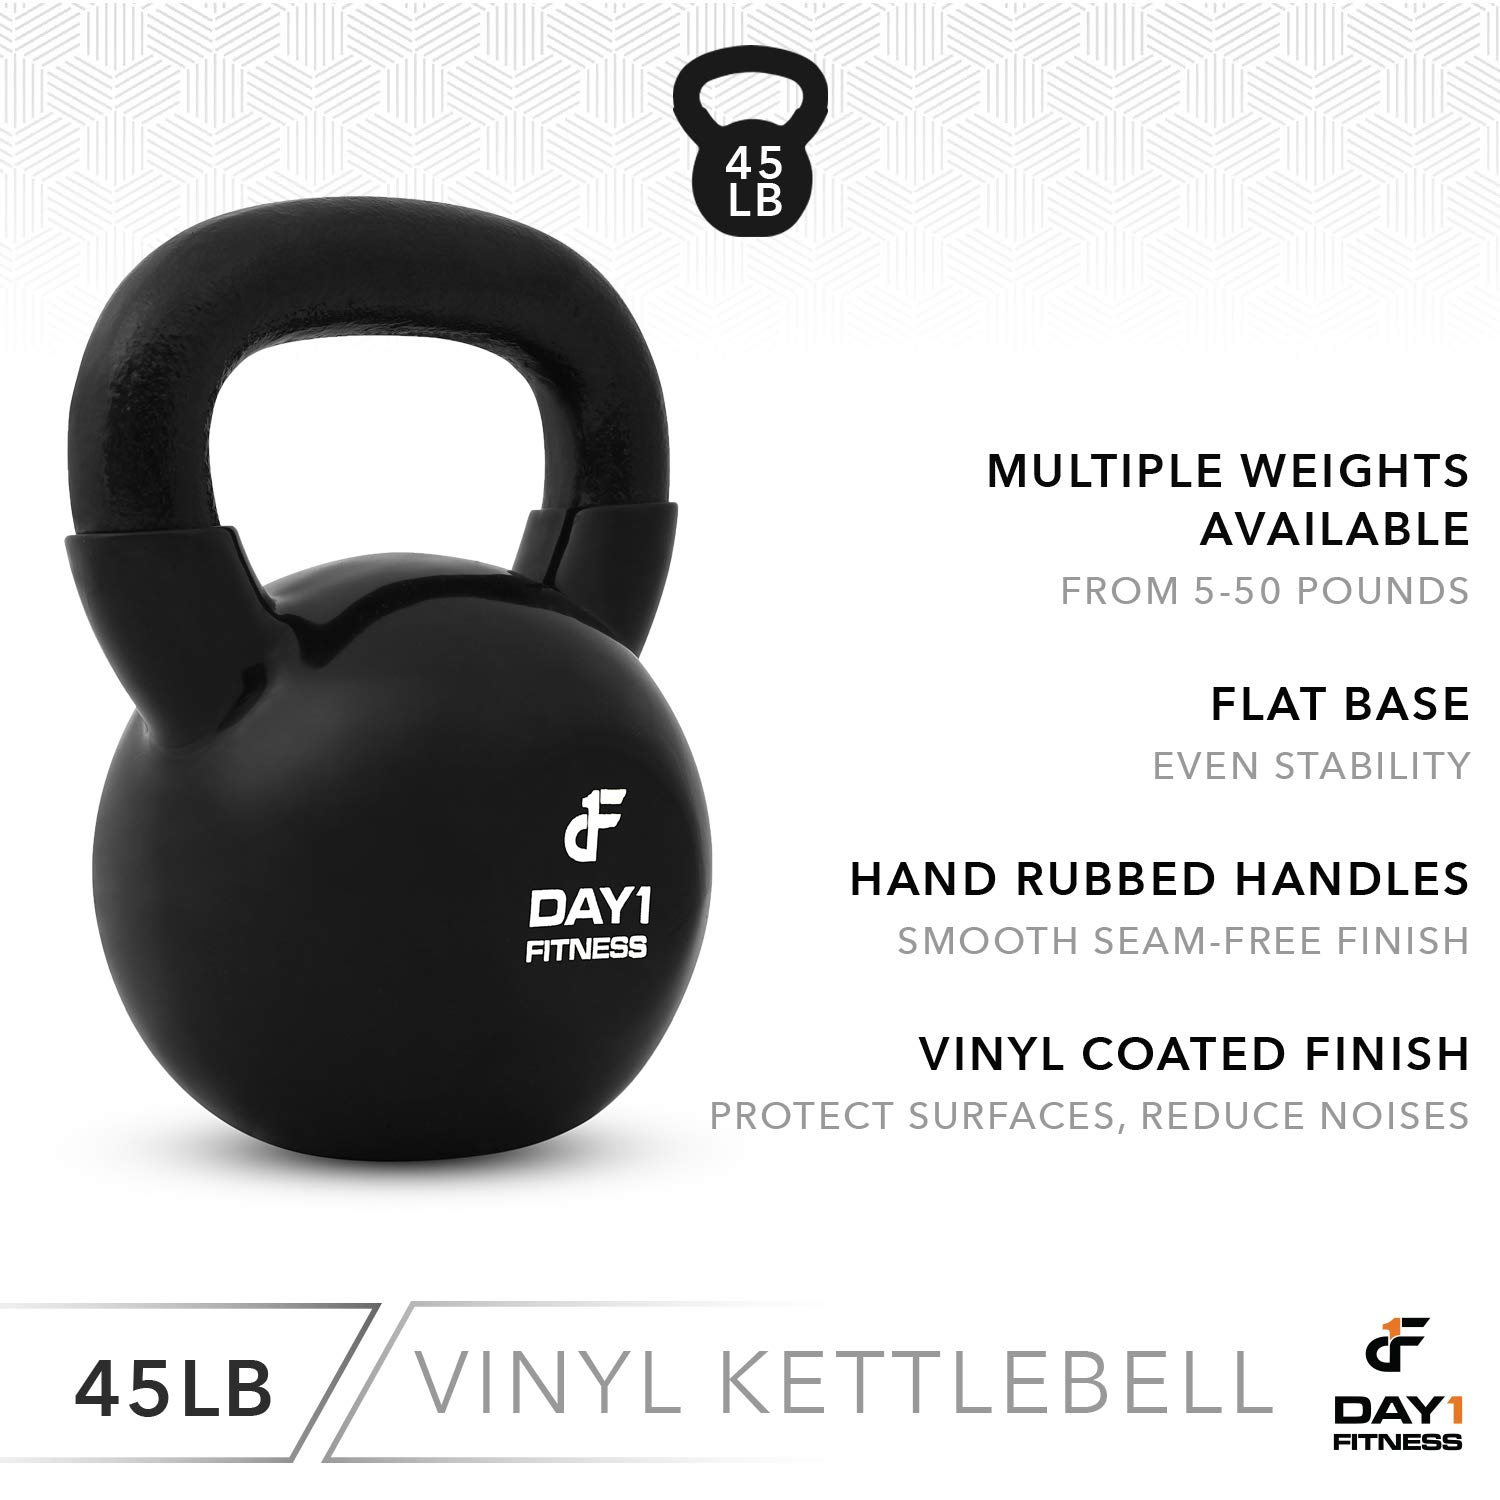 Day 1 Fitness Kettlebell Weights Vinyl Coated Iron 45 Pounds - Coated for Floor and Equipment Protection, Noise Reduction - Free Weights for Ballistic, Core, Weight Training by Day 1 Fitness (Image #4)